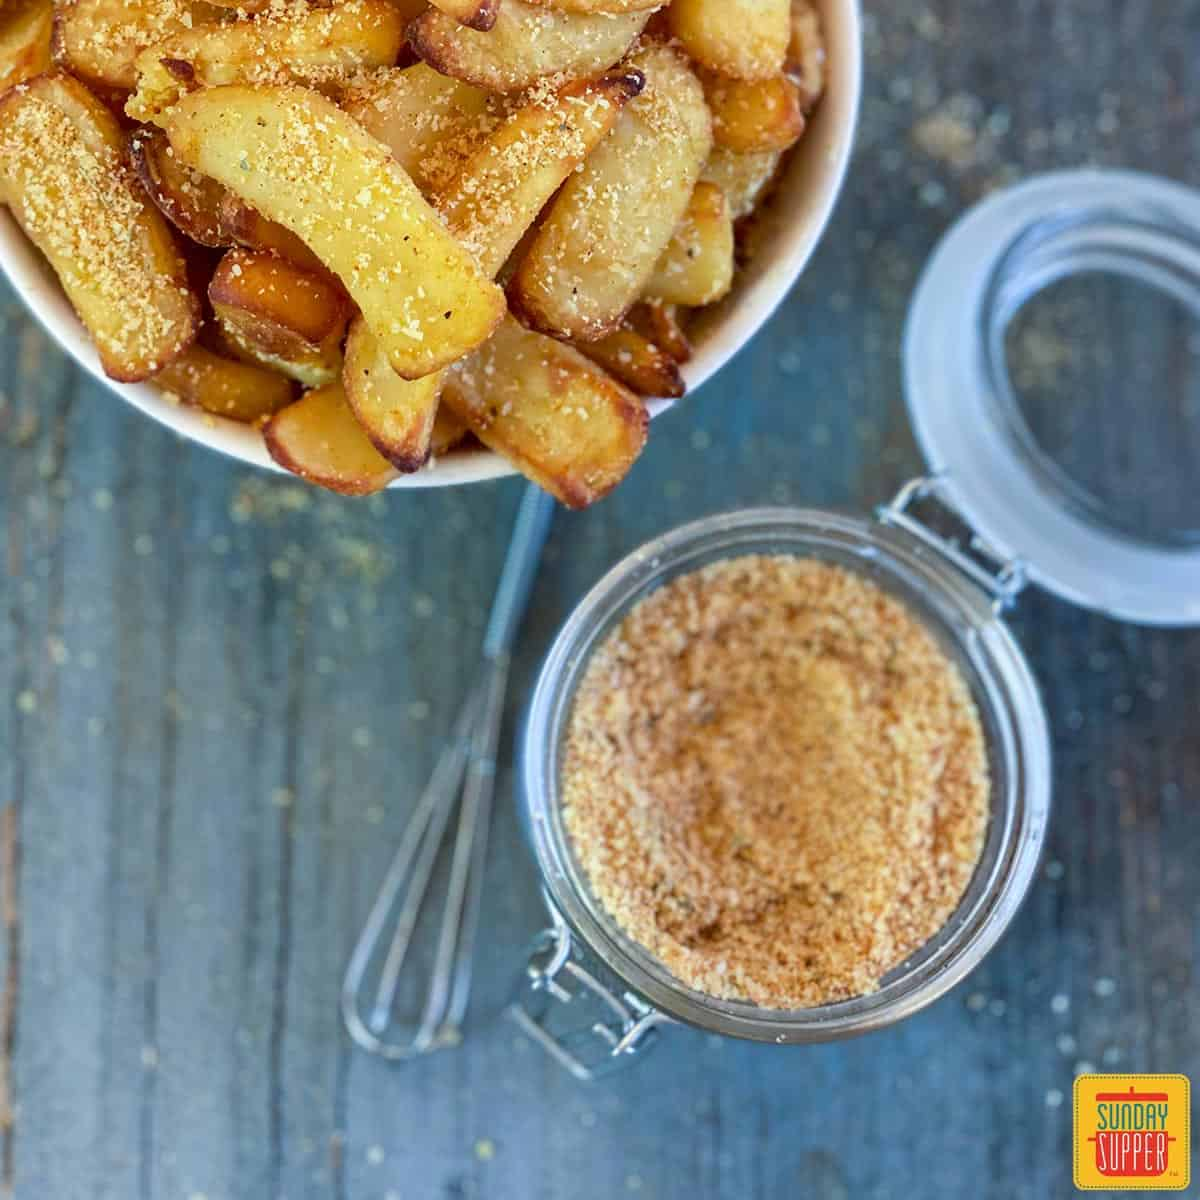 French fry seasoning in a jar next to air fryer fries in a bowl